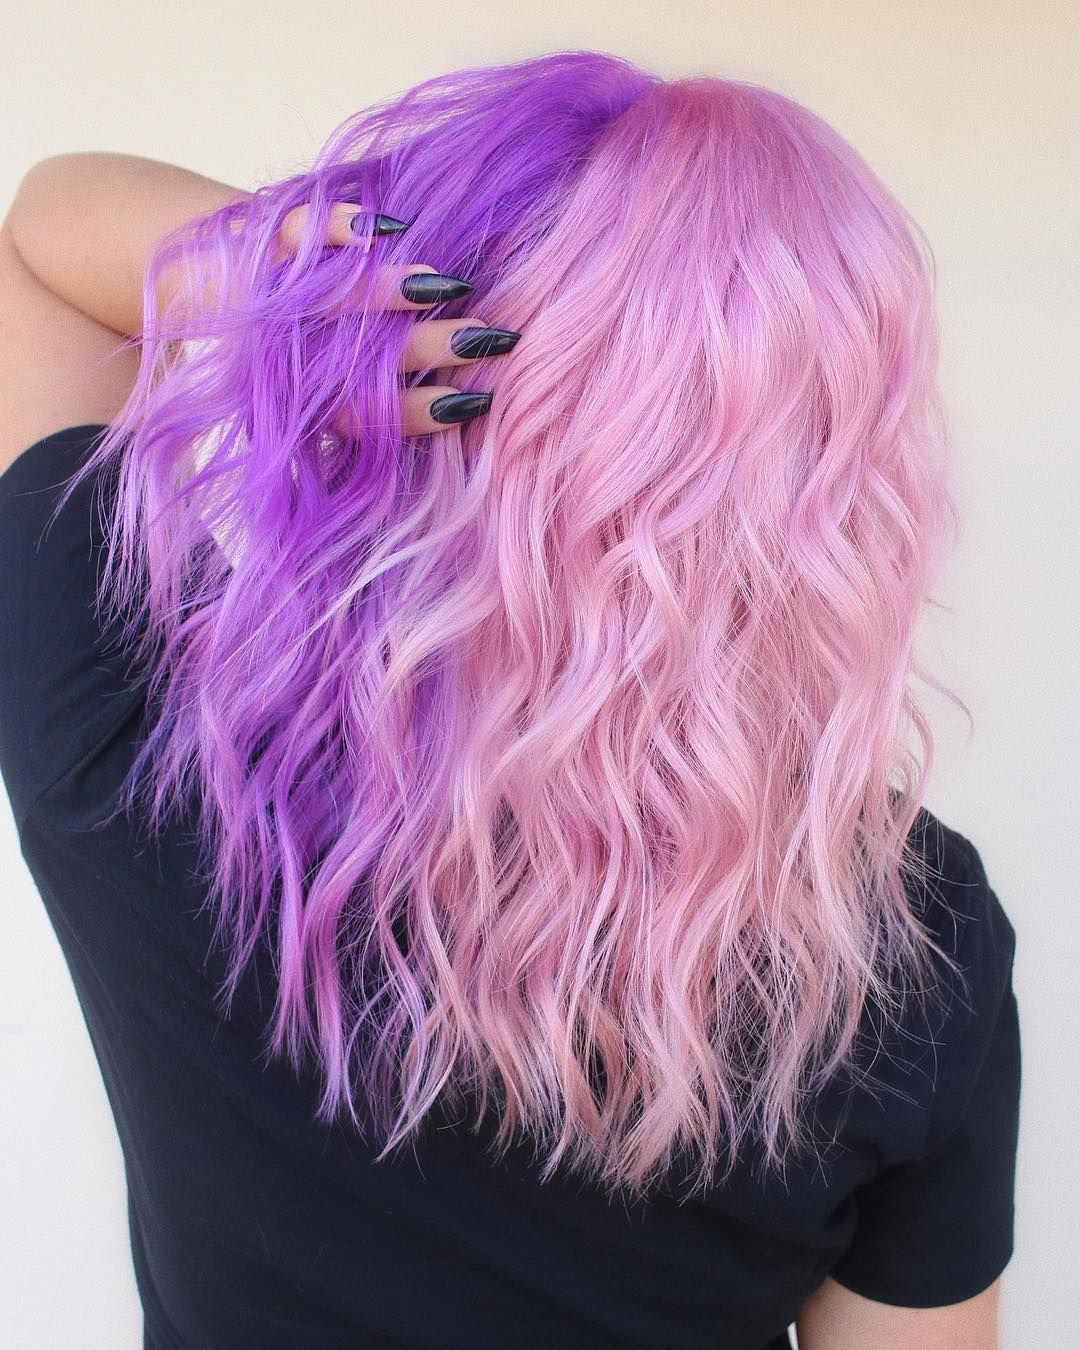 Kimberly Ibbotson On Instagram Color Split Using All Suavecitapomade Products Muse Pink And Paradox Purple Hair Styles Split Dyed Hair Hair Inspo Color